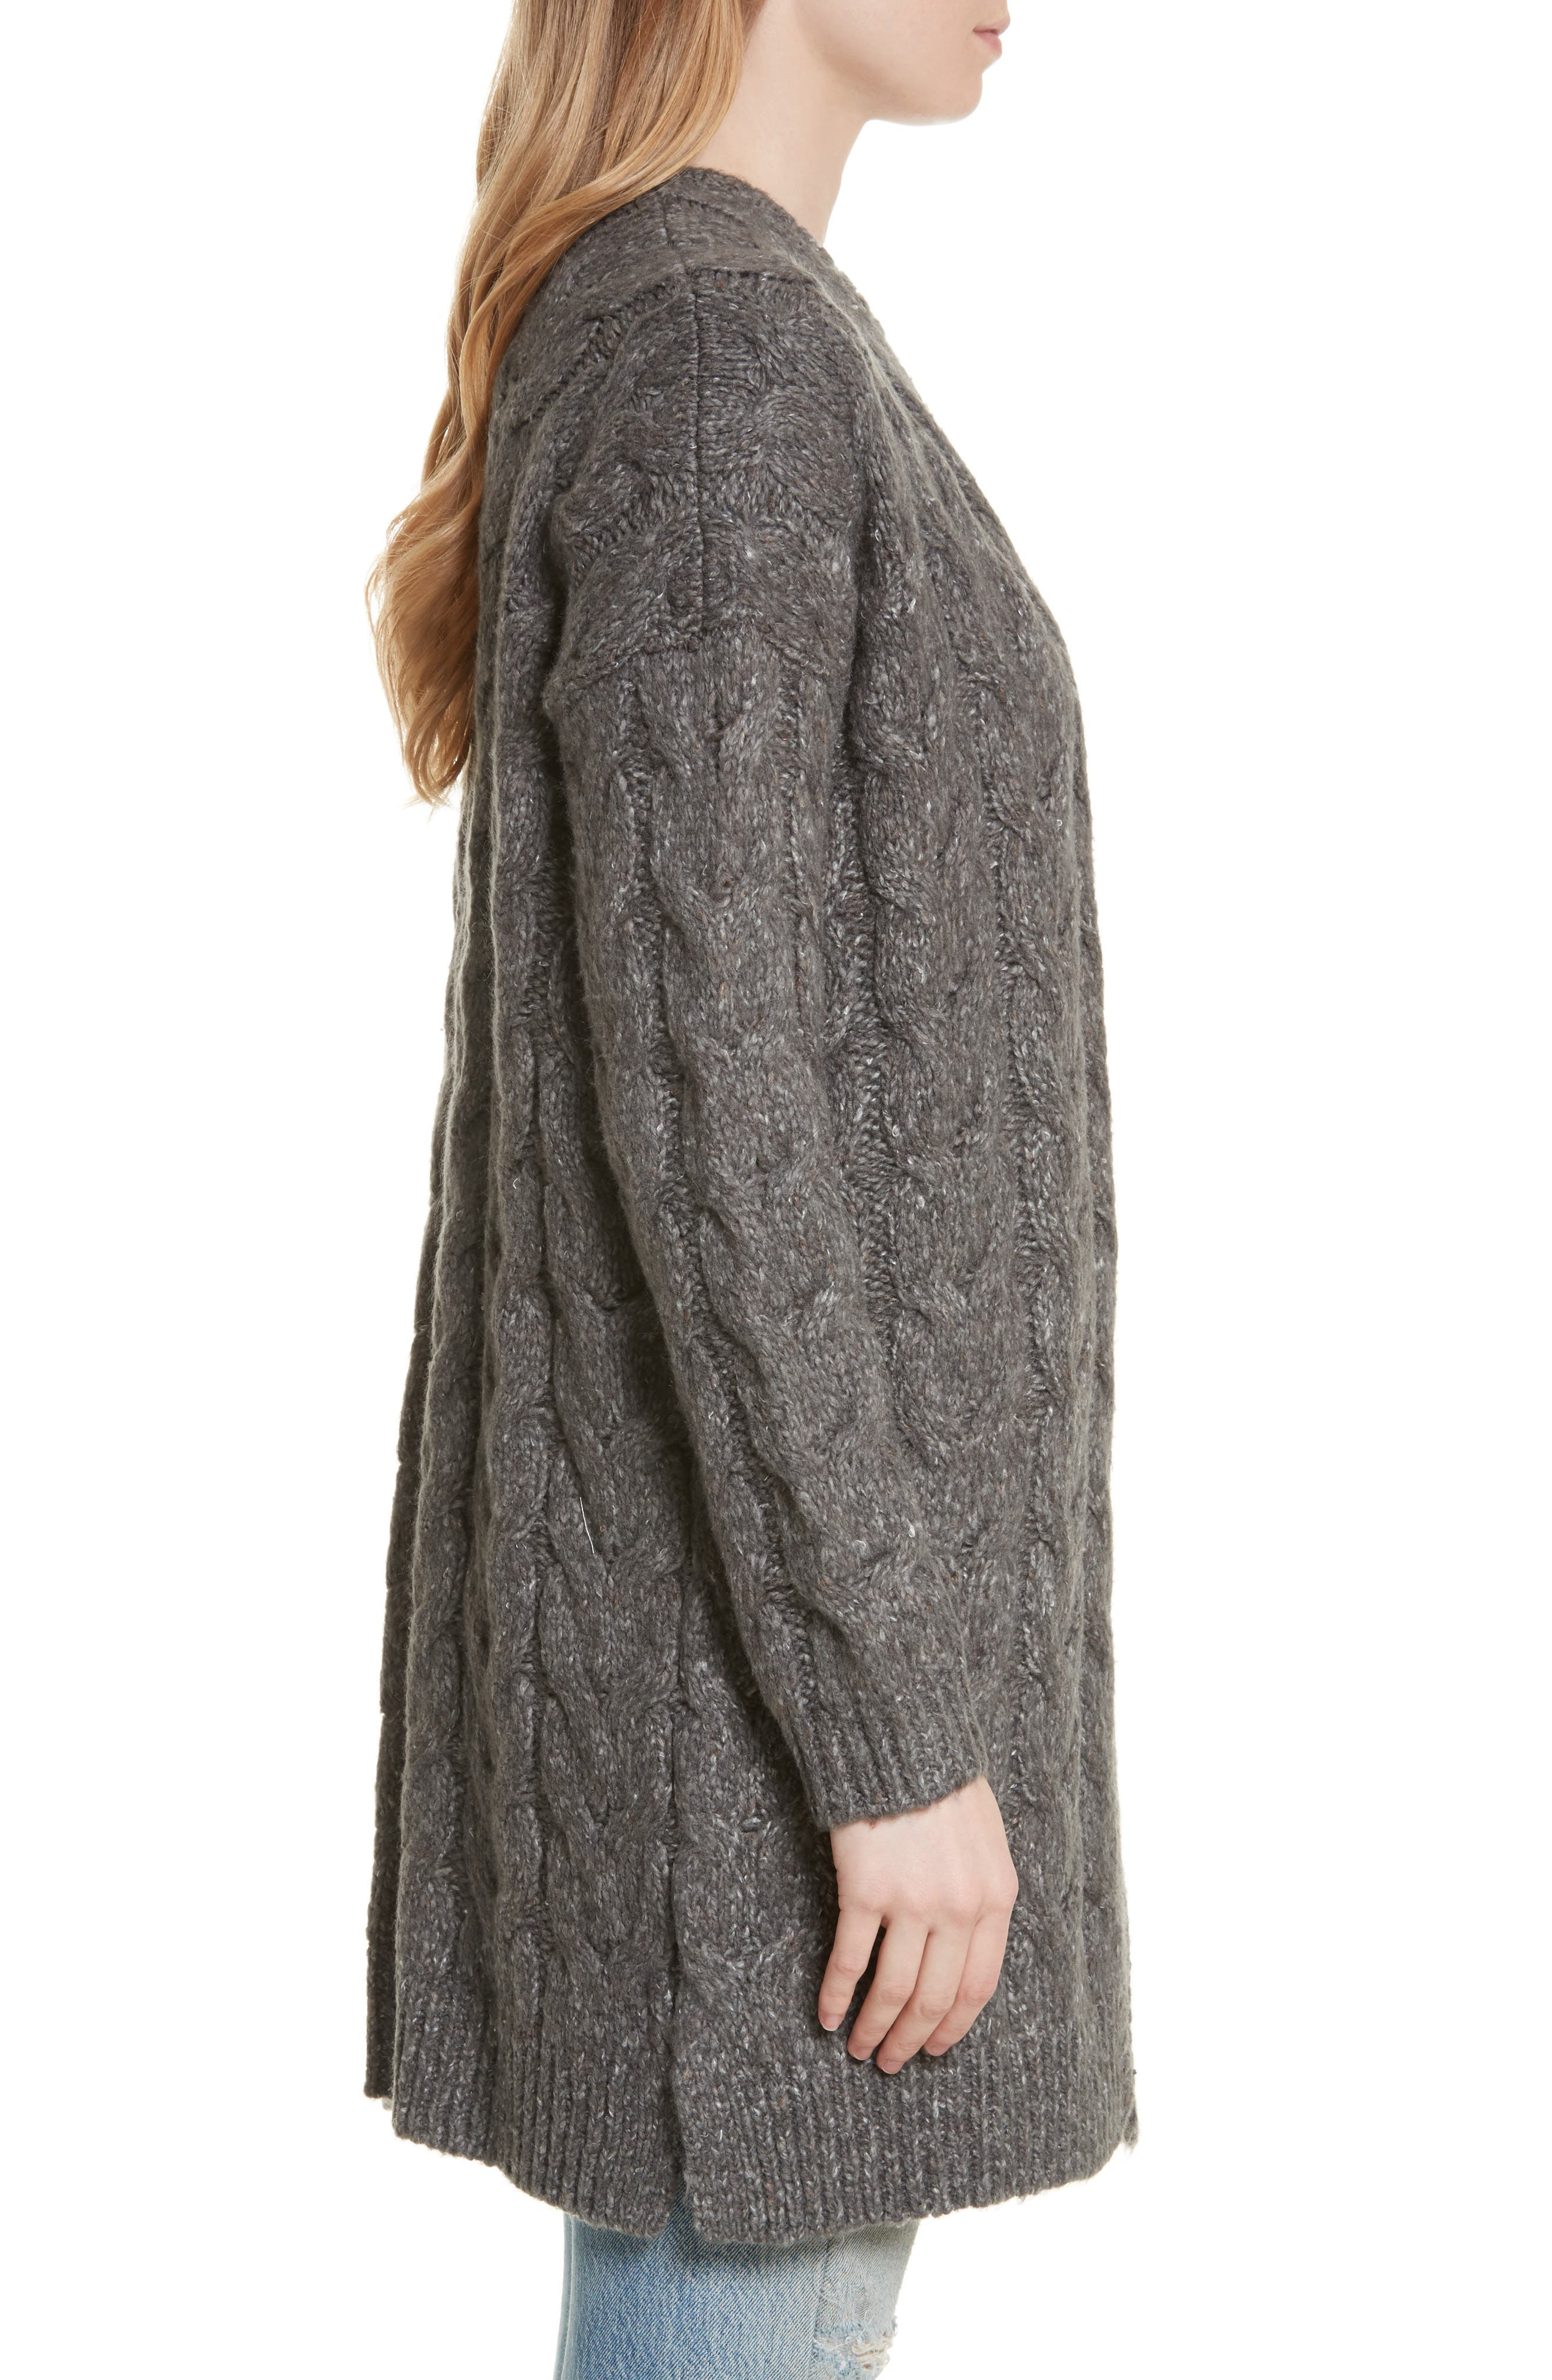 Tienna Cable-Knit Cardigan,                             Alternate thumbnail 3, color,                             076